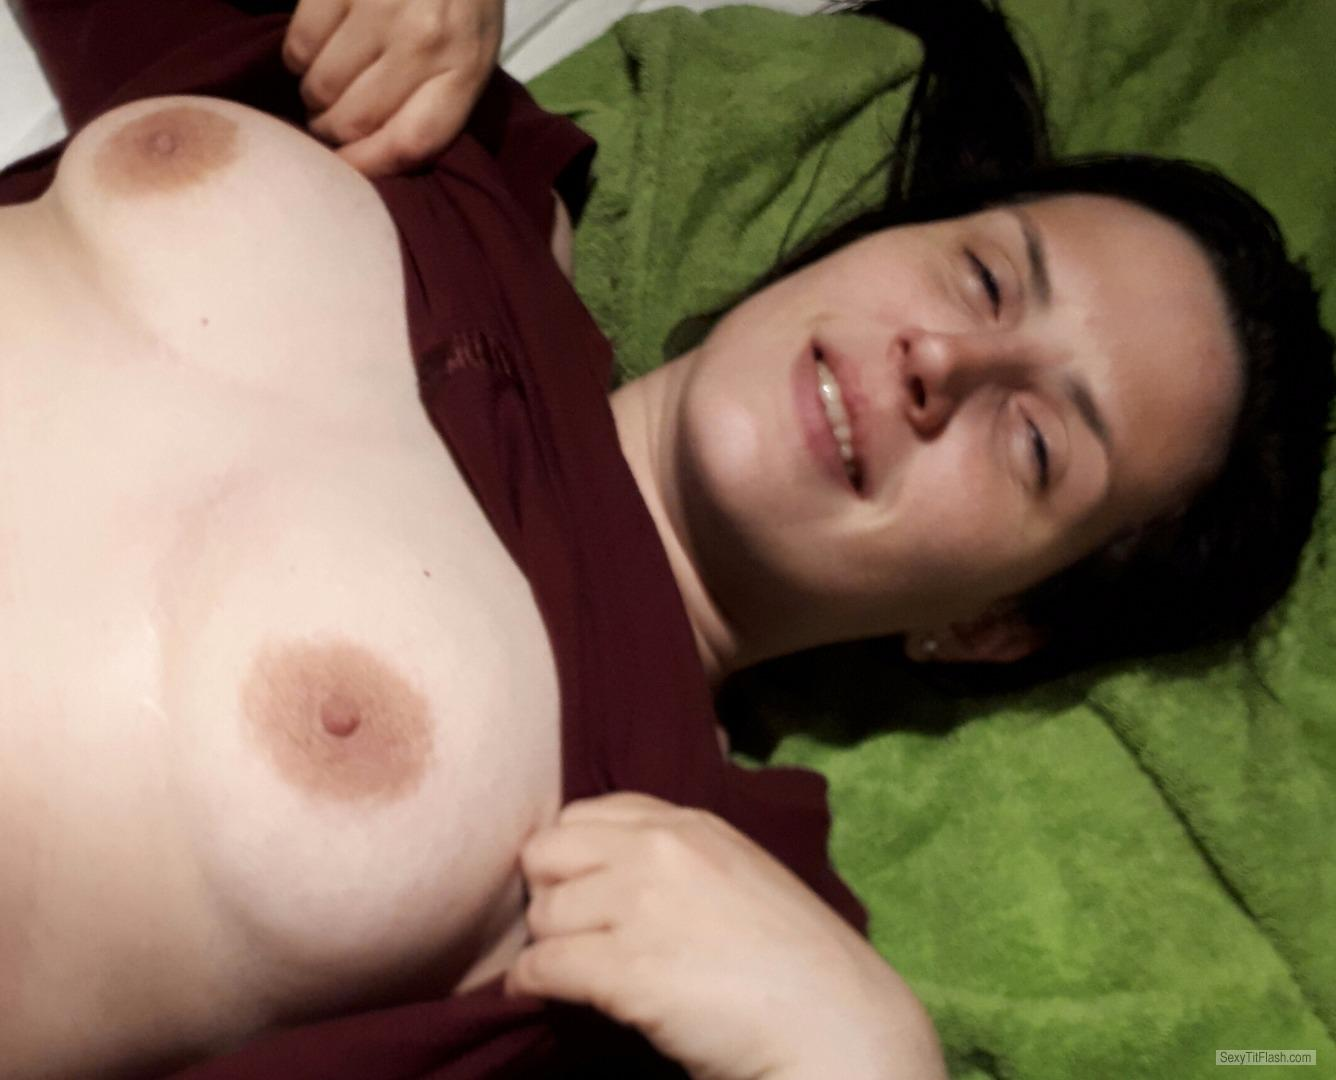 Tit Flash: Wife's Medium Tits - Topless Deve from United Kingdom